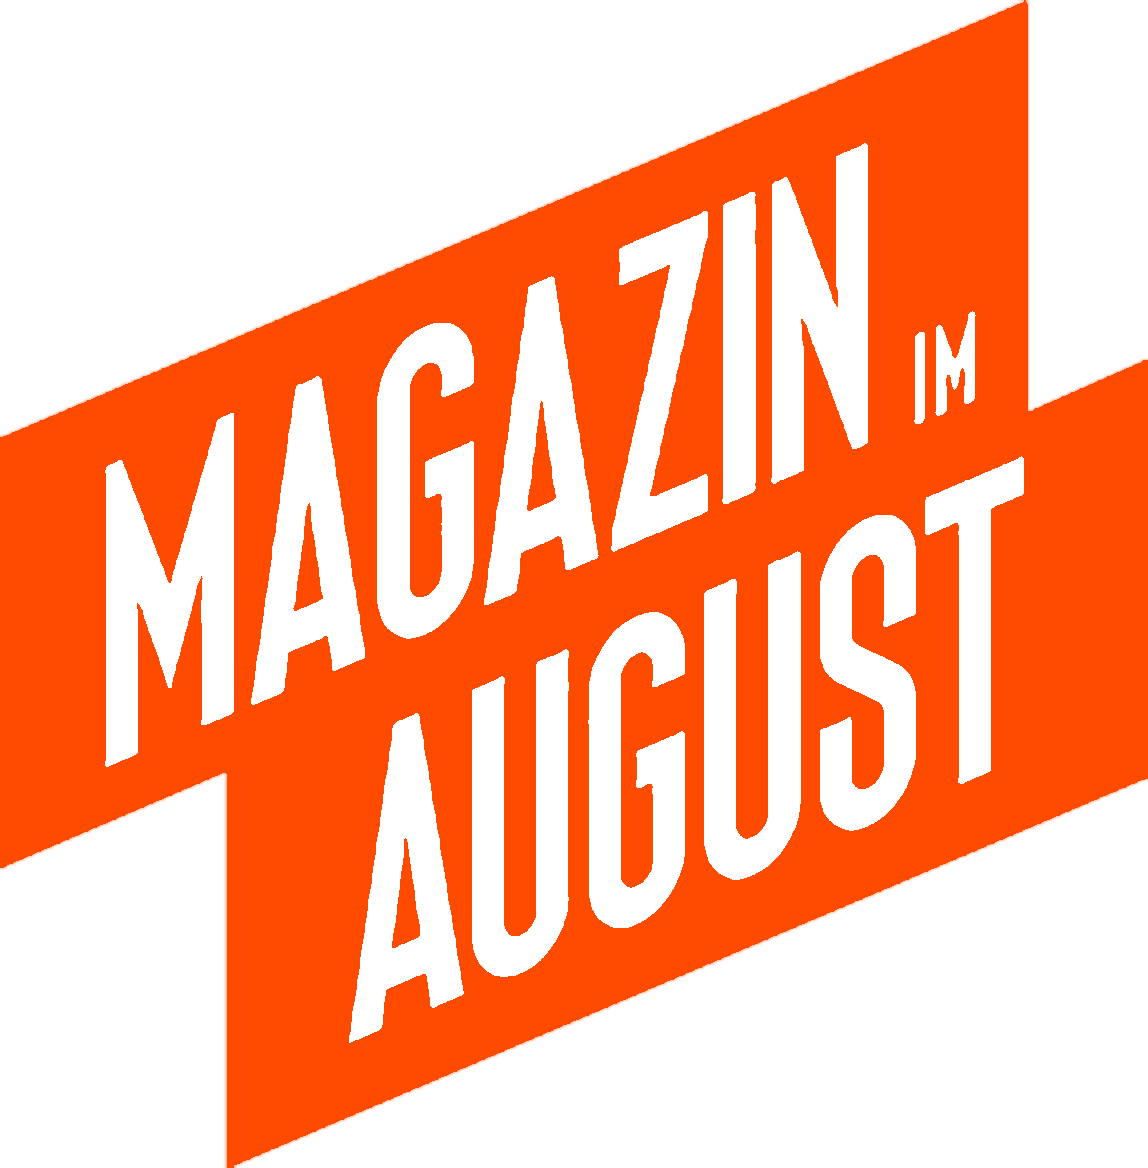 Magazin im August